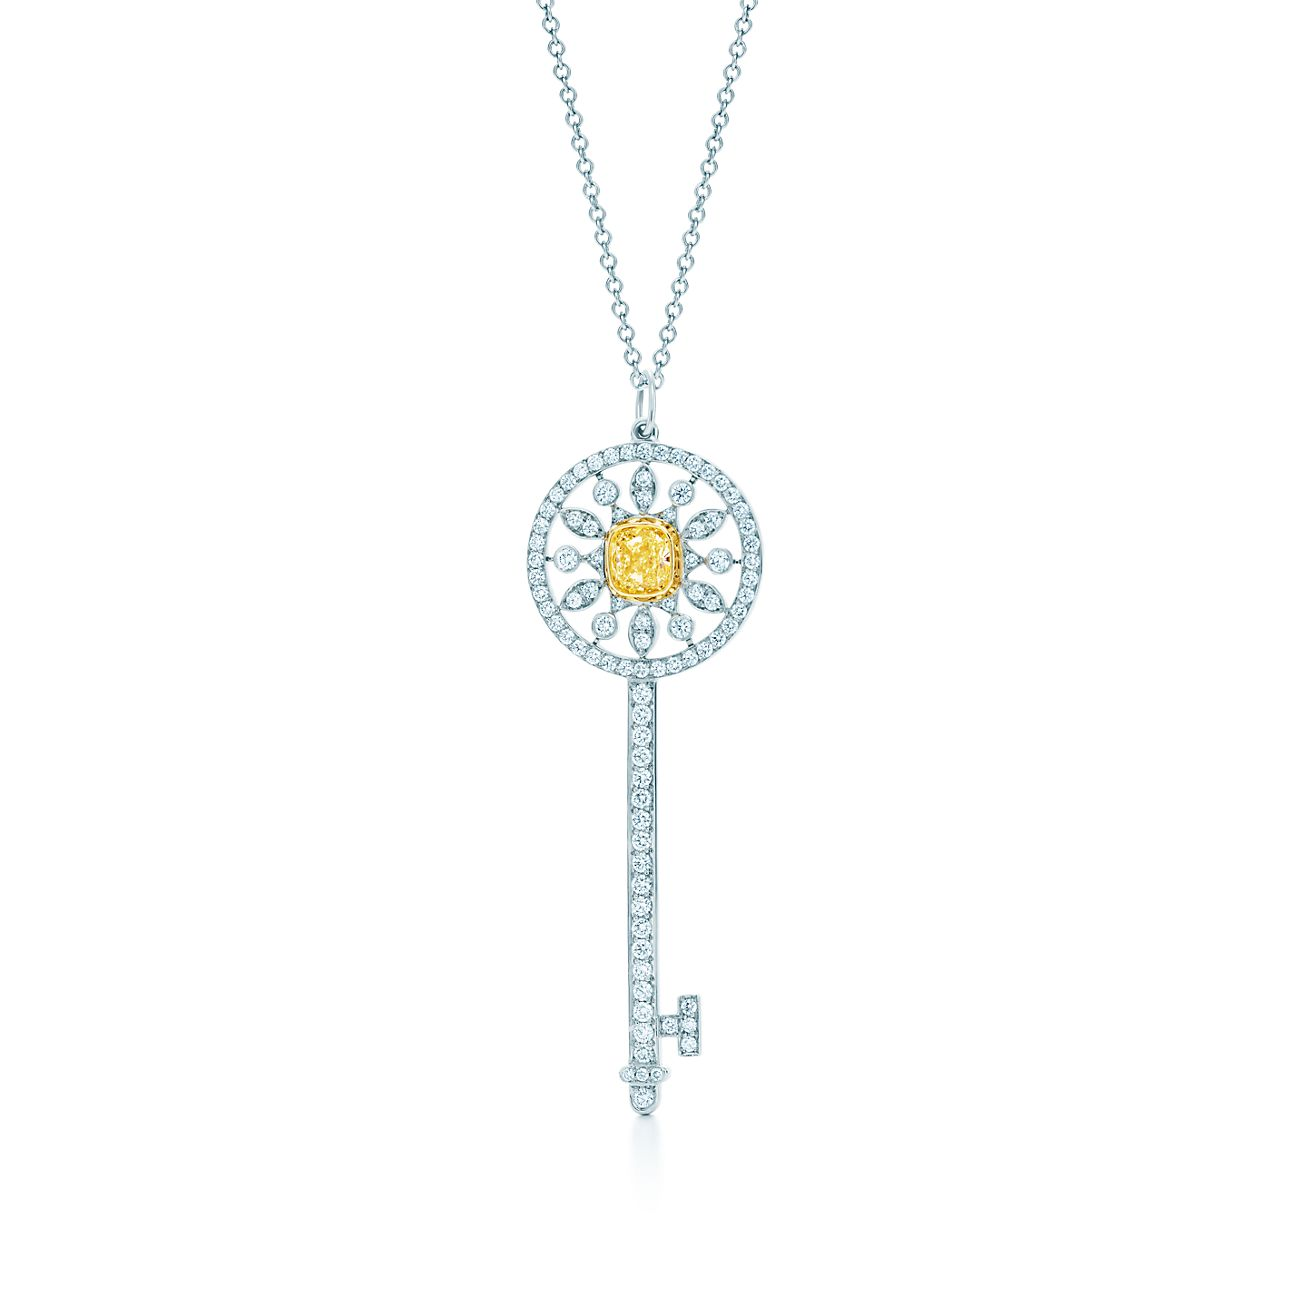 Tiffany keys star key pendant of yellow and white diamonds in tiffany keysstar key pendant mozeypictures Images